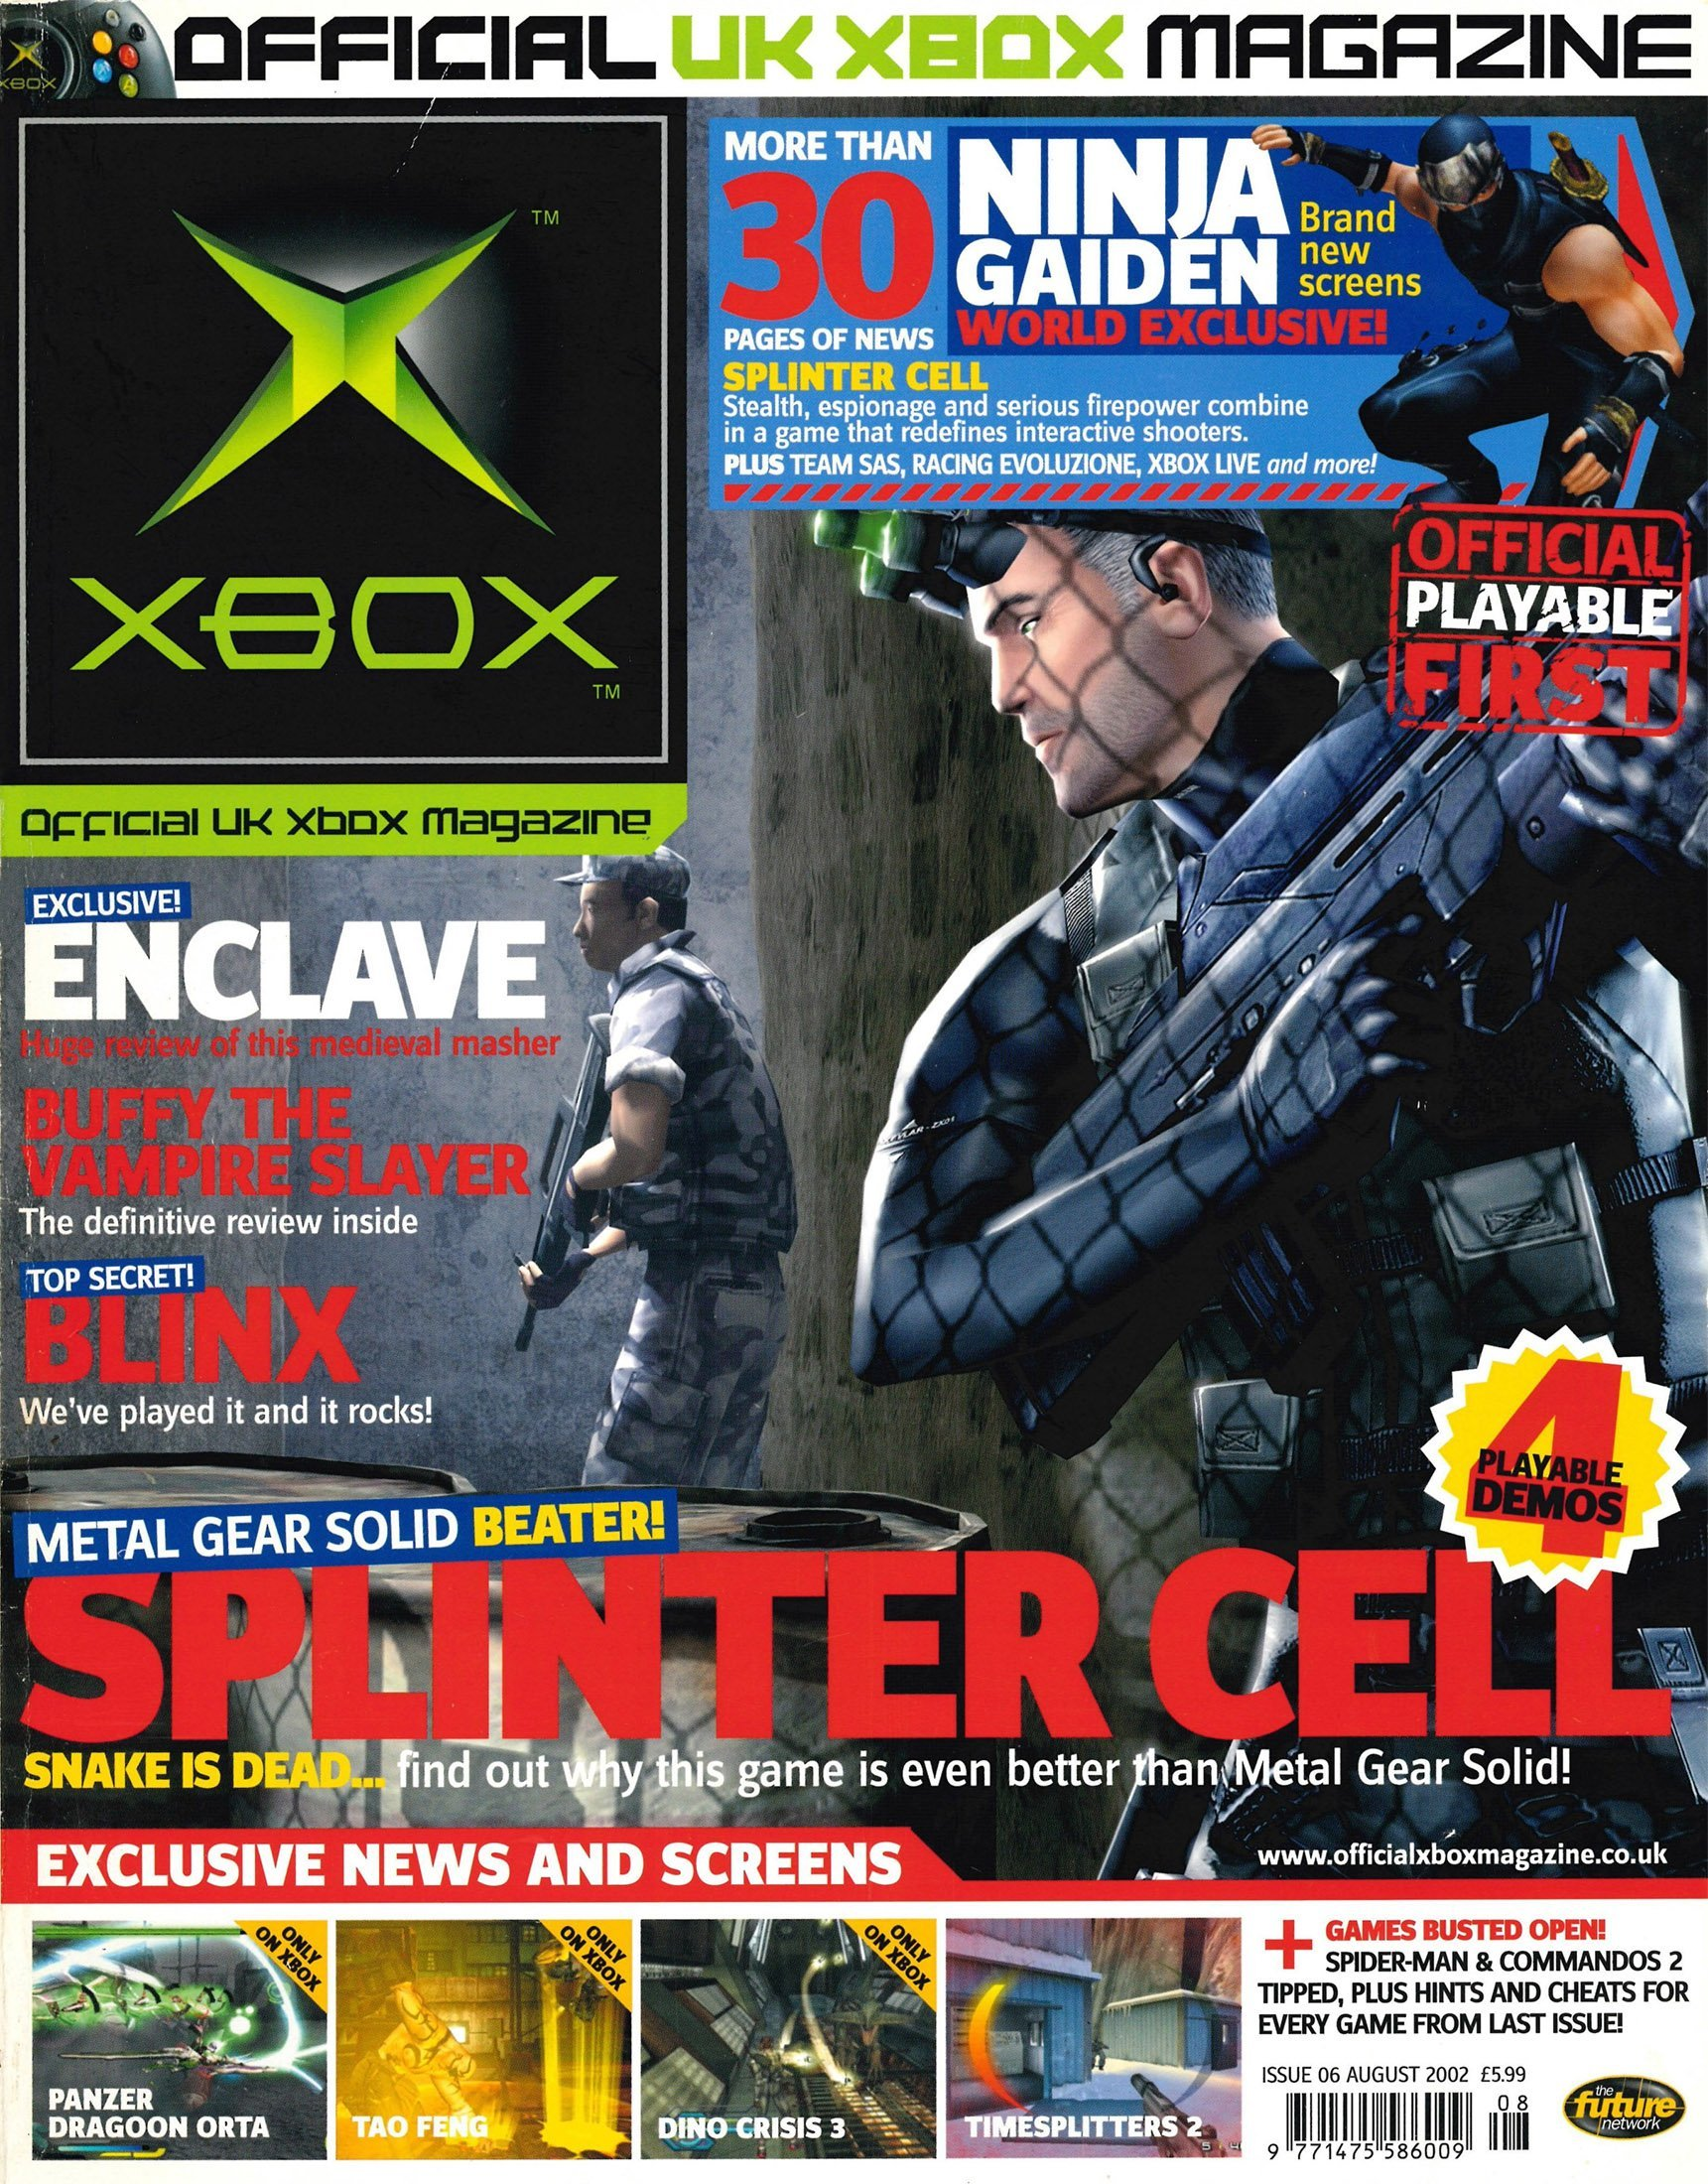 Official UK Xbox Magazine Issue 06 - August 2002